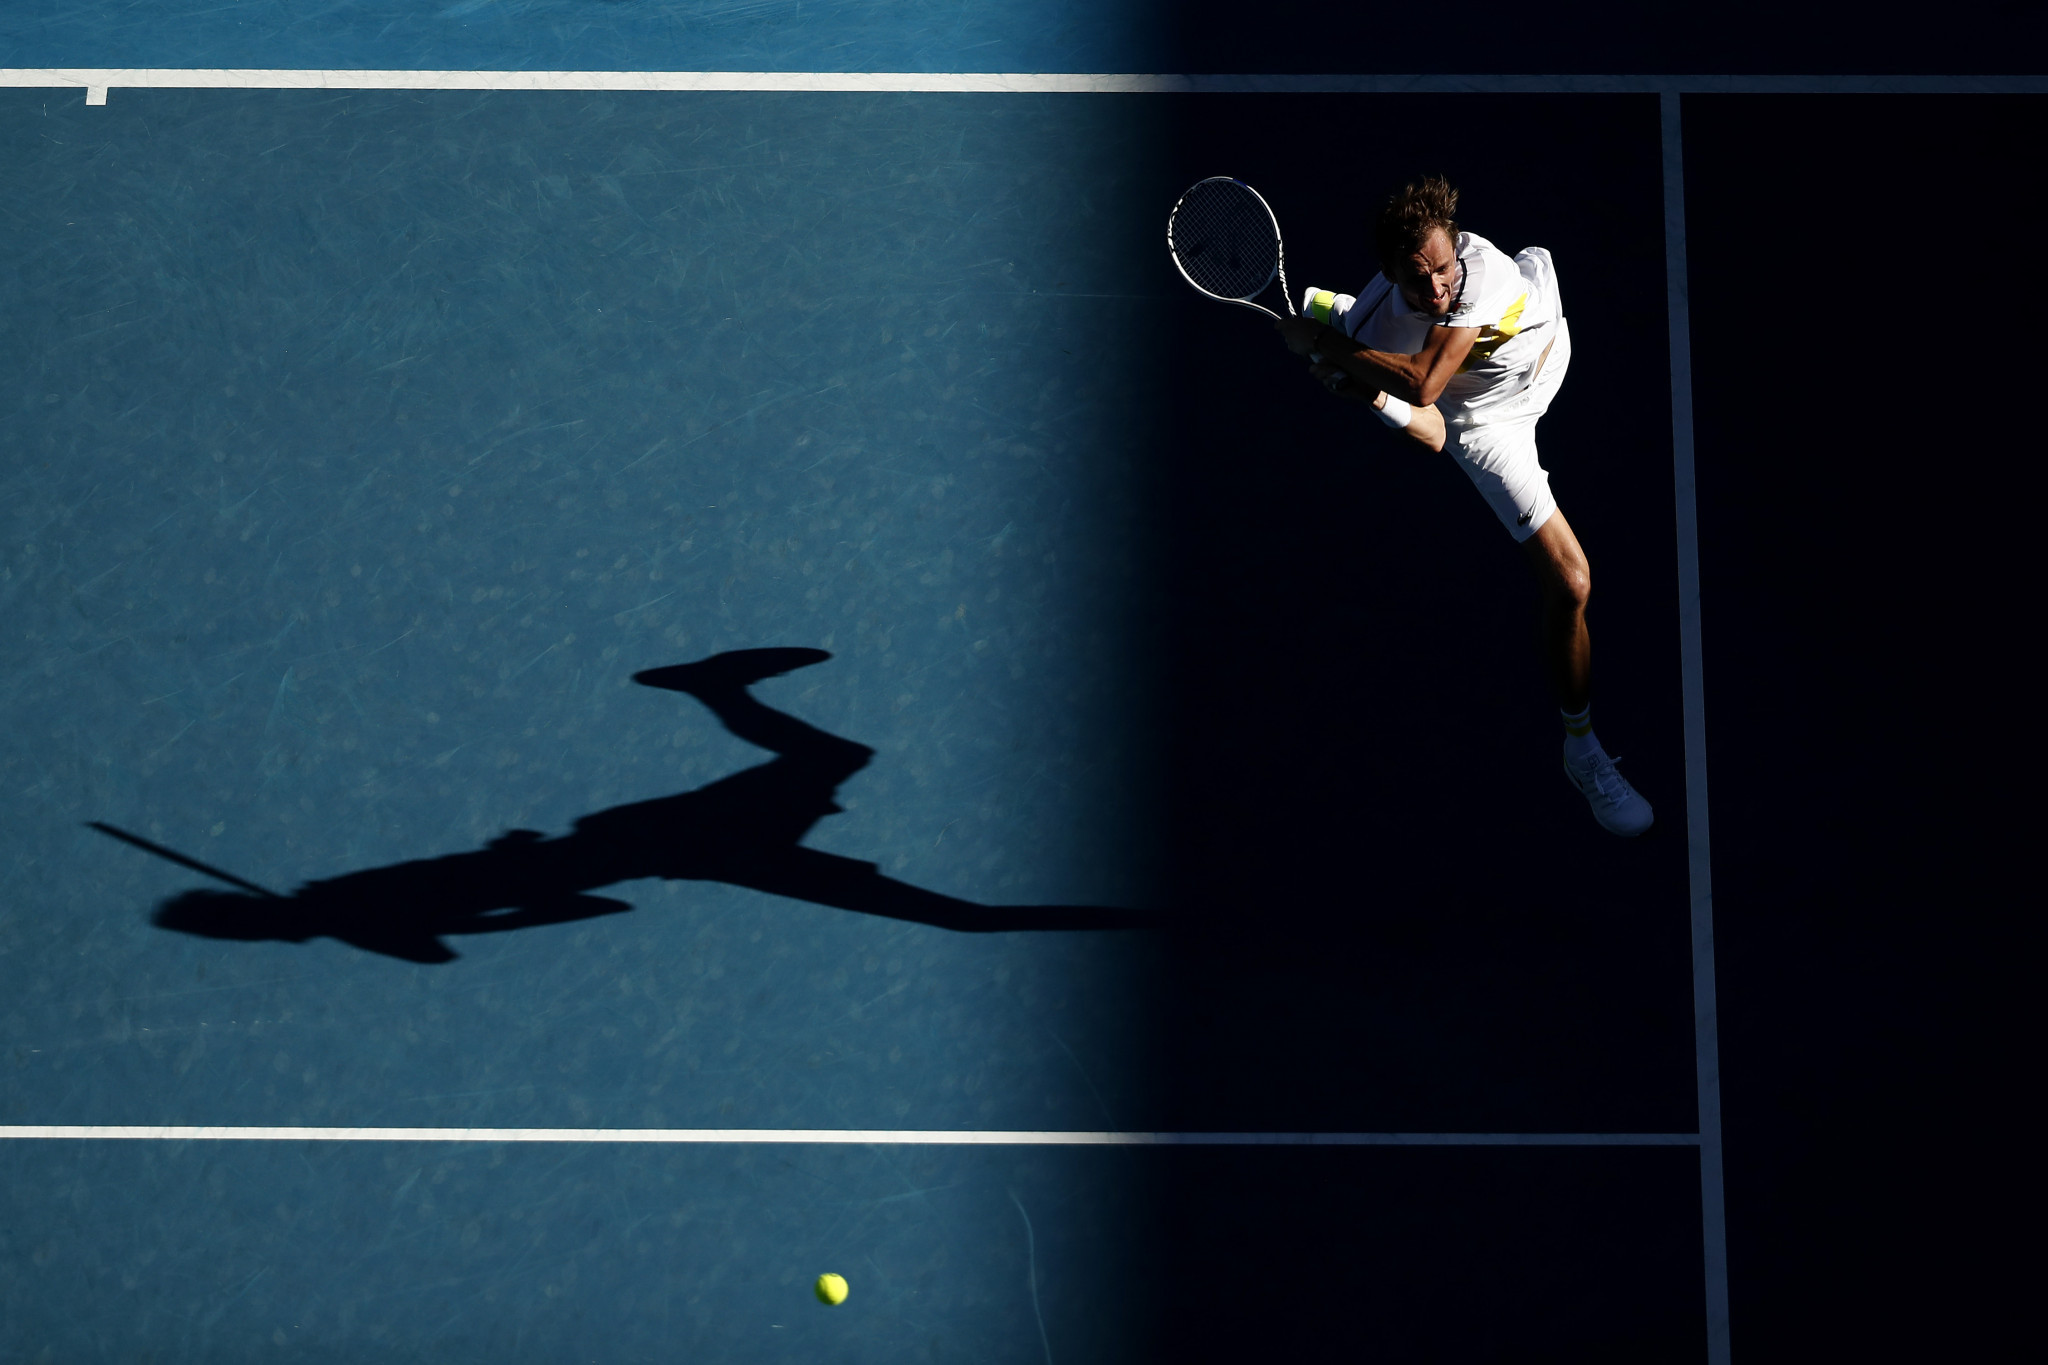 Daniil Medvedev earned a straight sets win in his men's singles quarter-final ©Getty Images